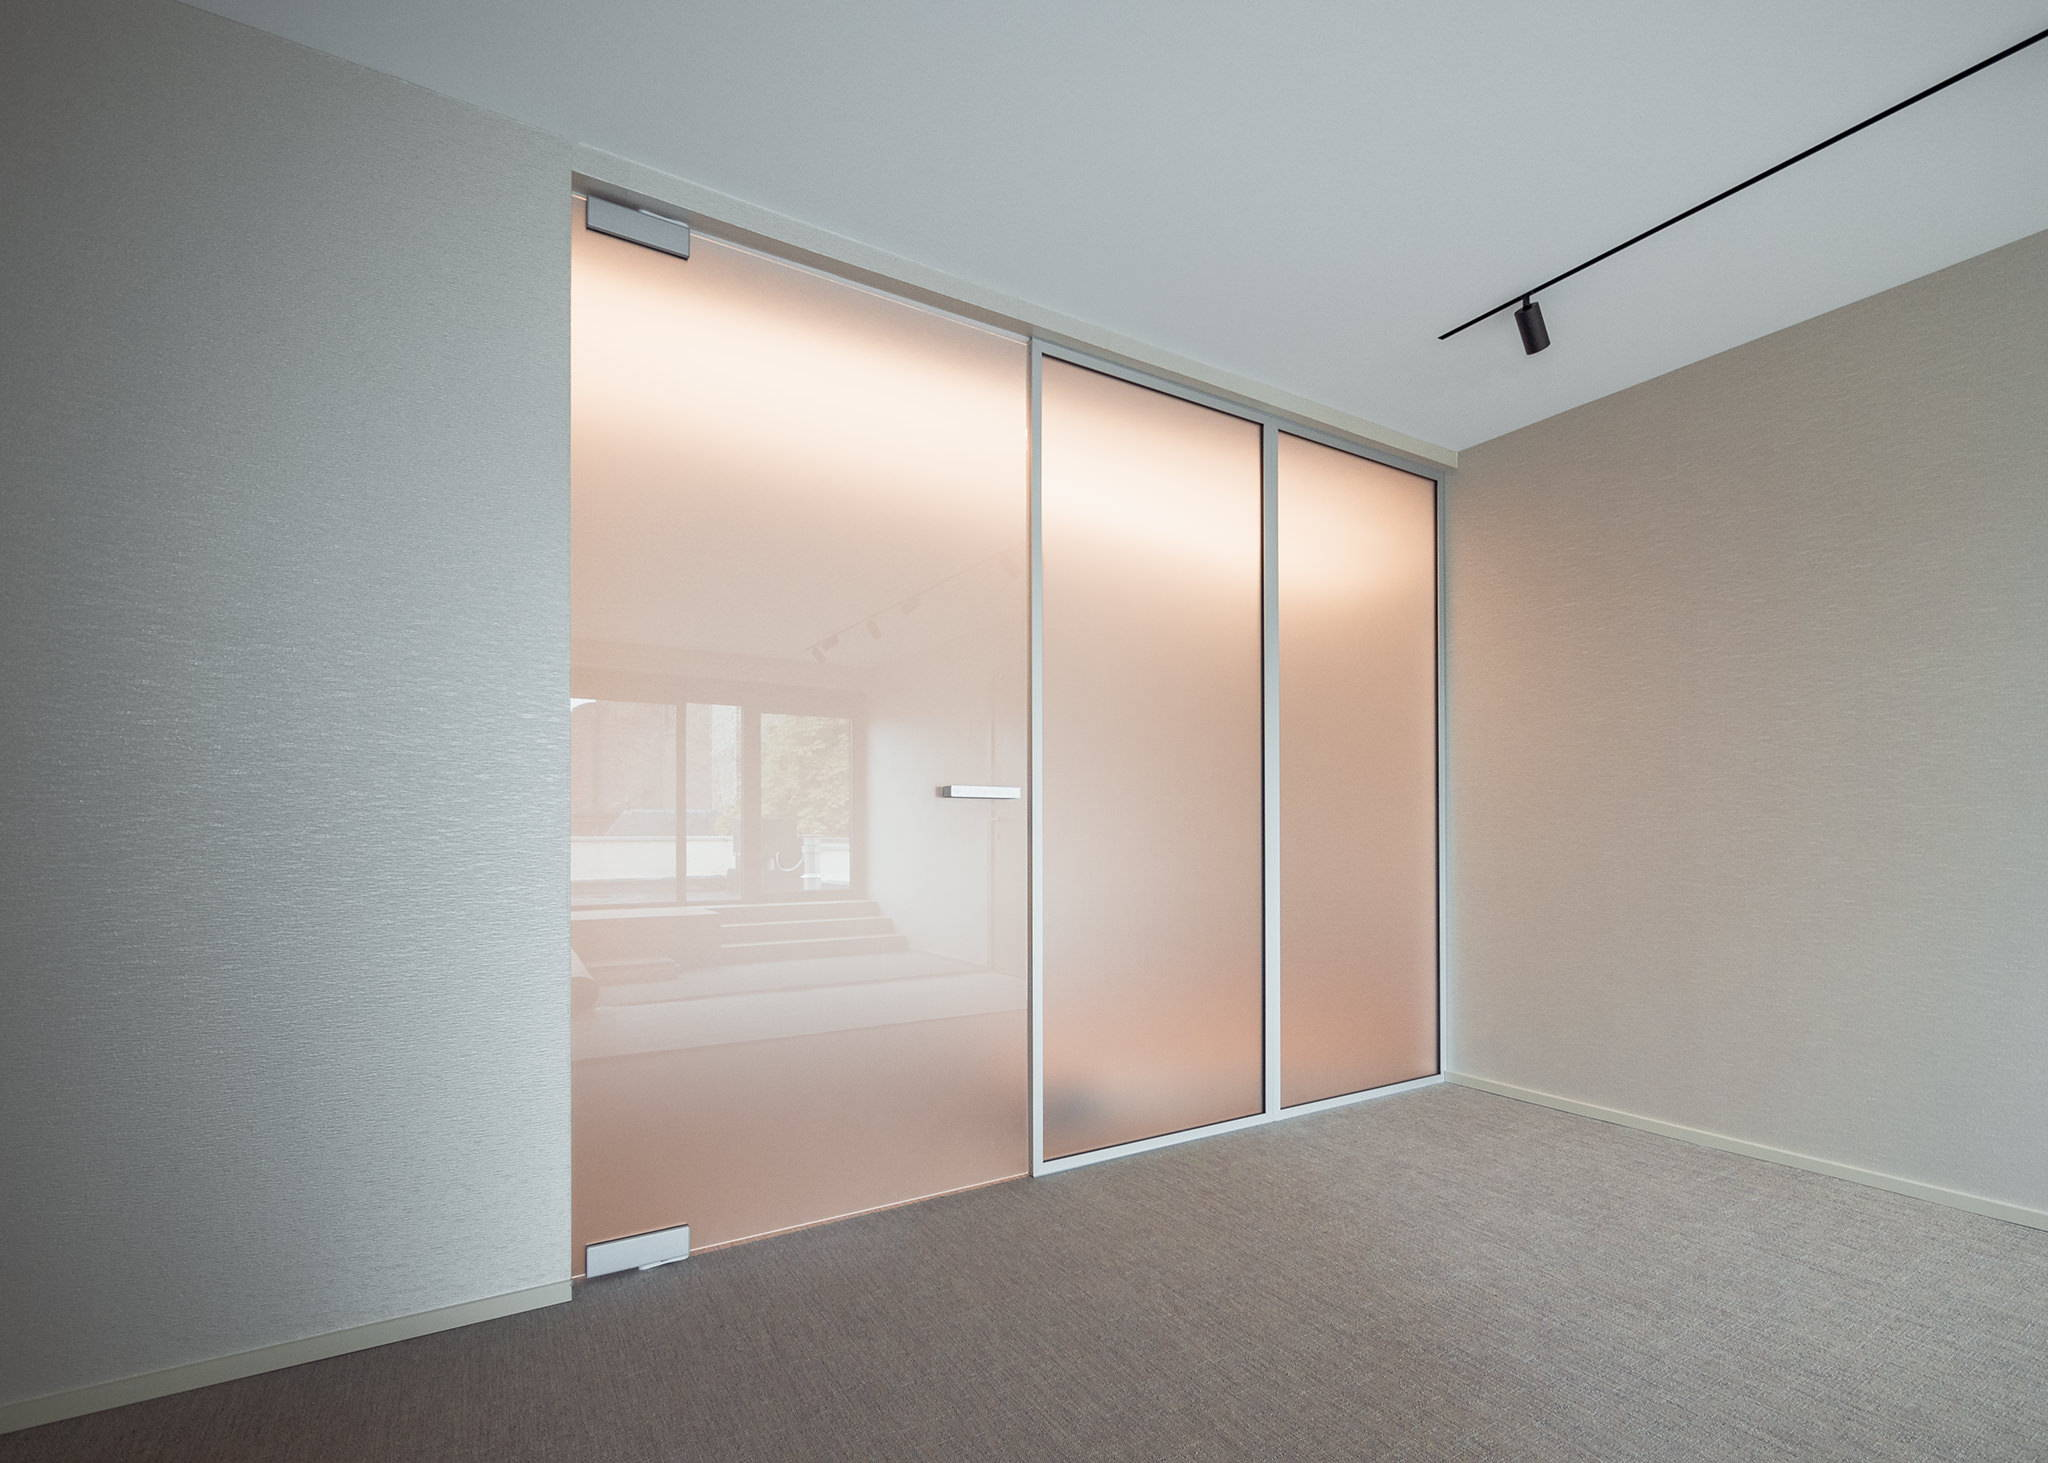 Glass pivot door with fixed glass partitions alongside